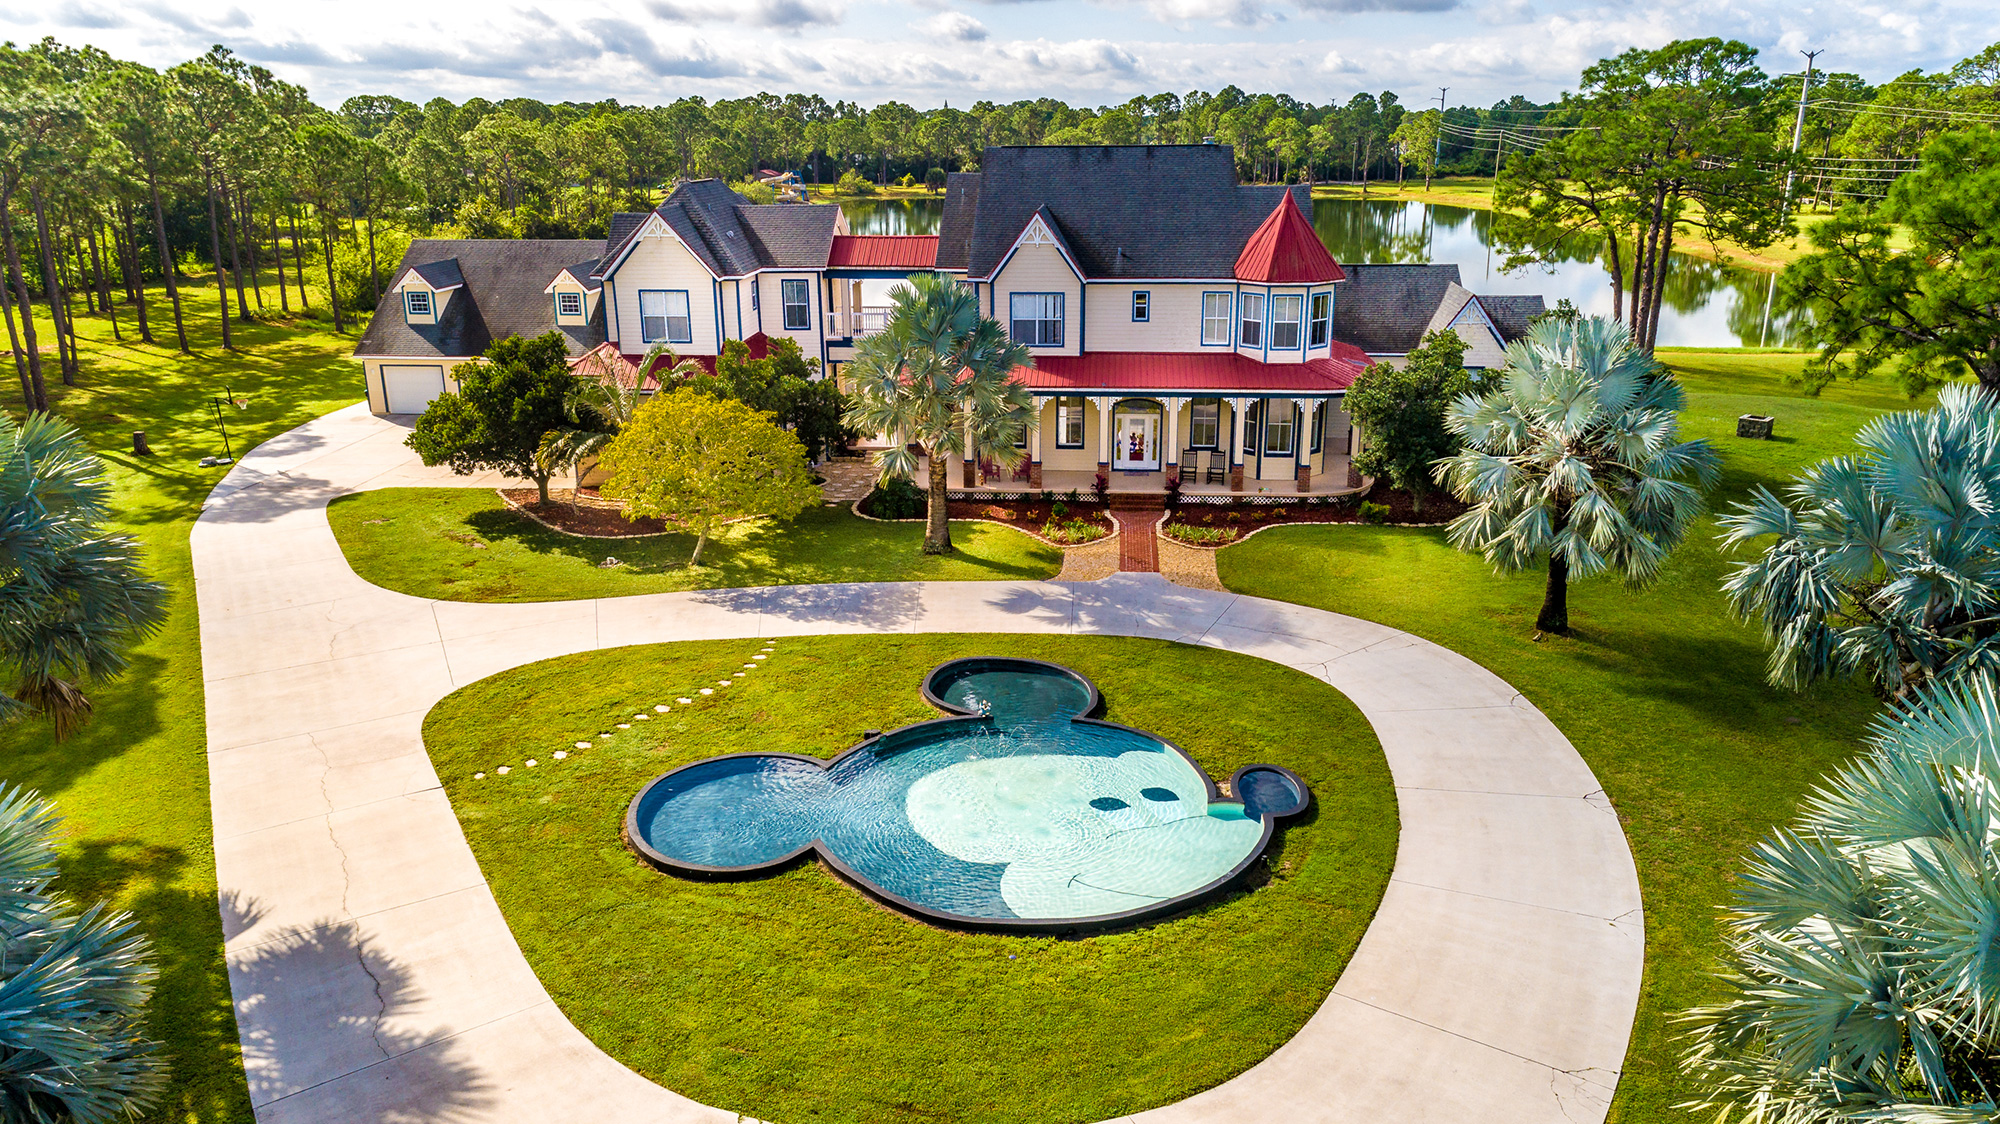 Disney Lovers' Florida House with Two Mickey Mouse–Shaped Pools Hits the Market for $850K